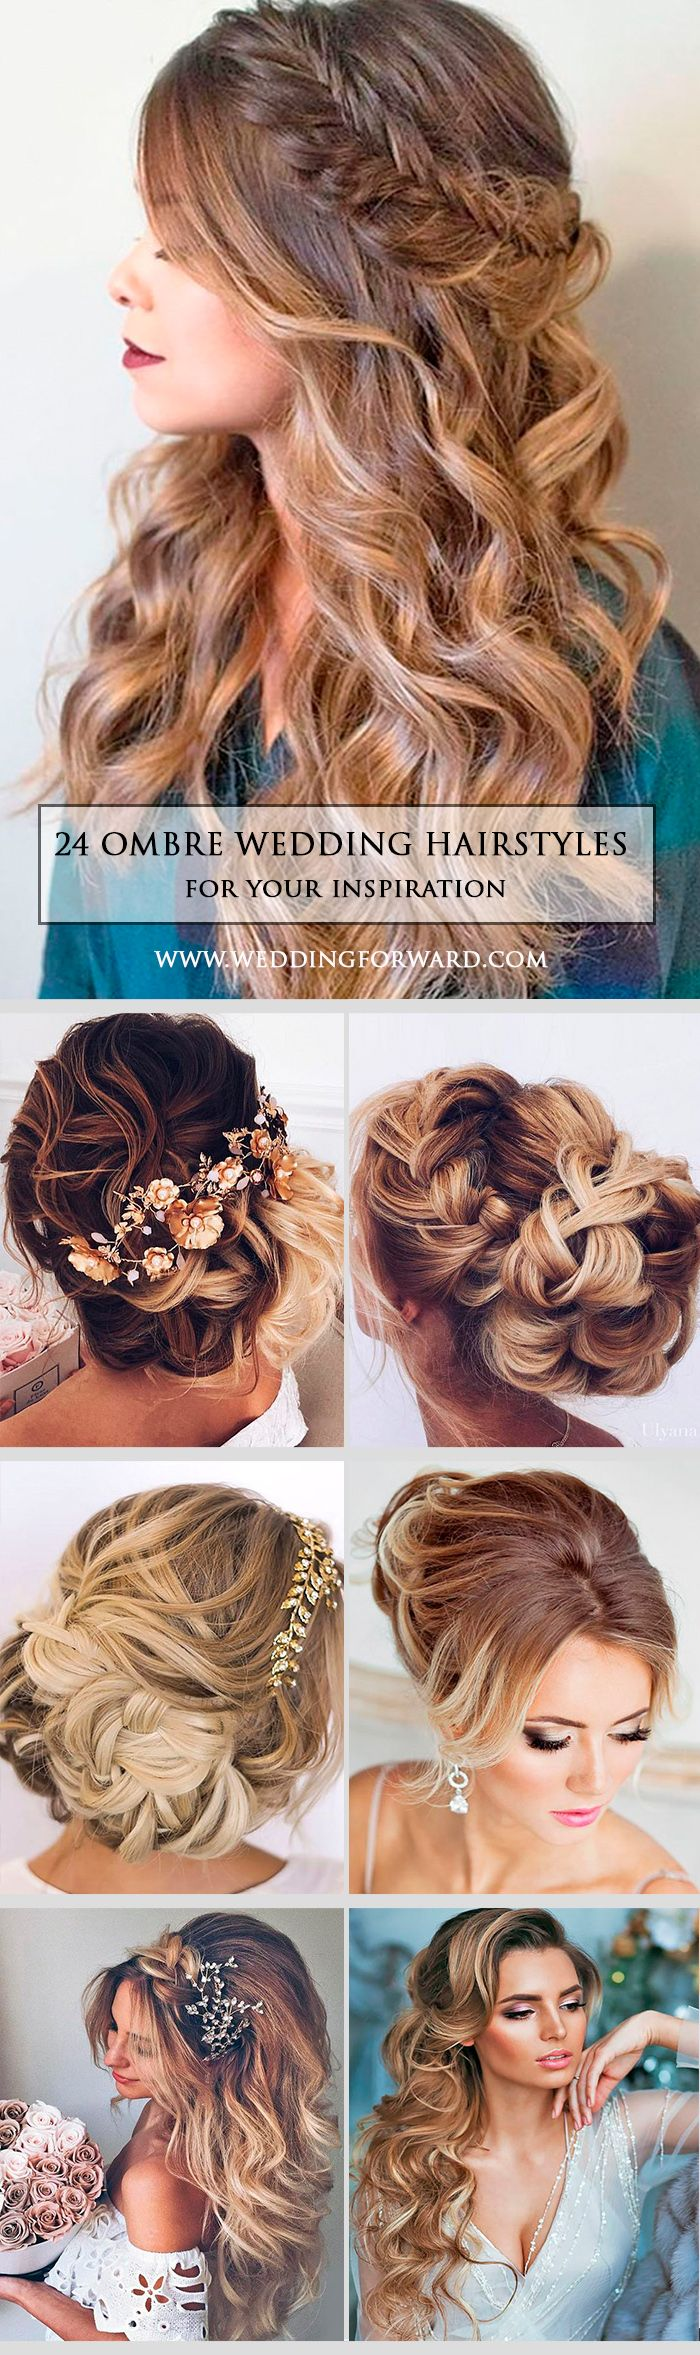 24 Modish Ombre Wedding Hairstyles ❤ Ombre wedding hairstyles are on trend thi...